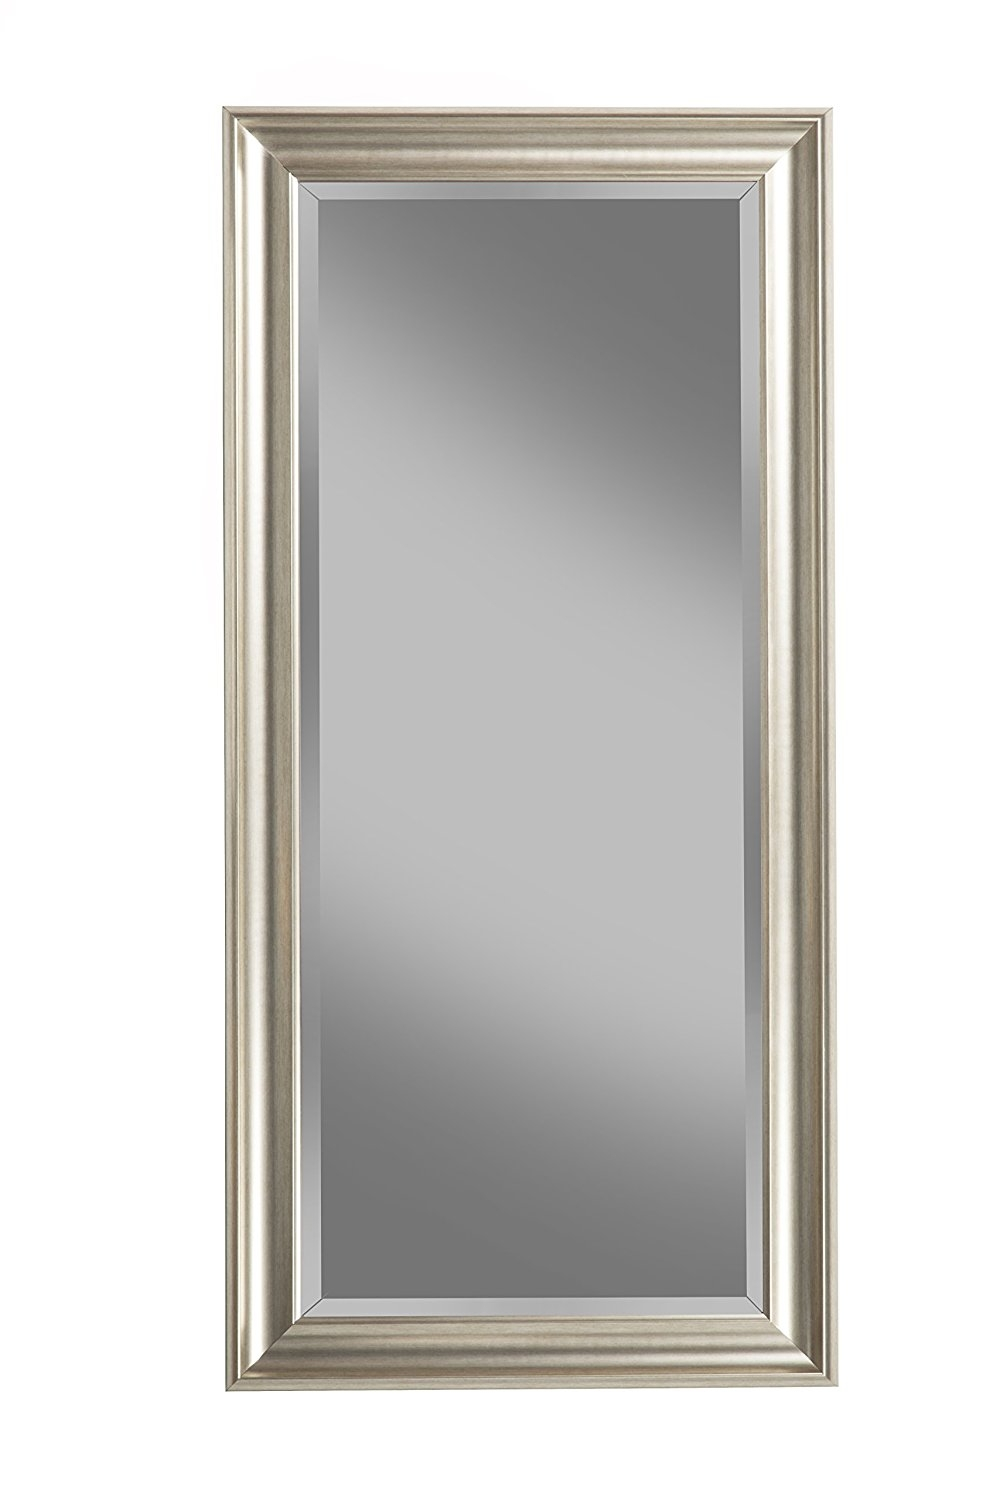 Amazon Sandberg Furniture Champagne Silver Full Length Leaner Inside Silver Full Length Mirror (Image 1 of 15)